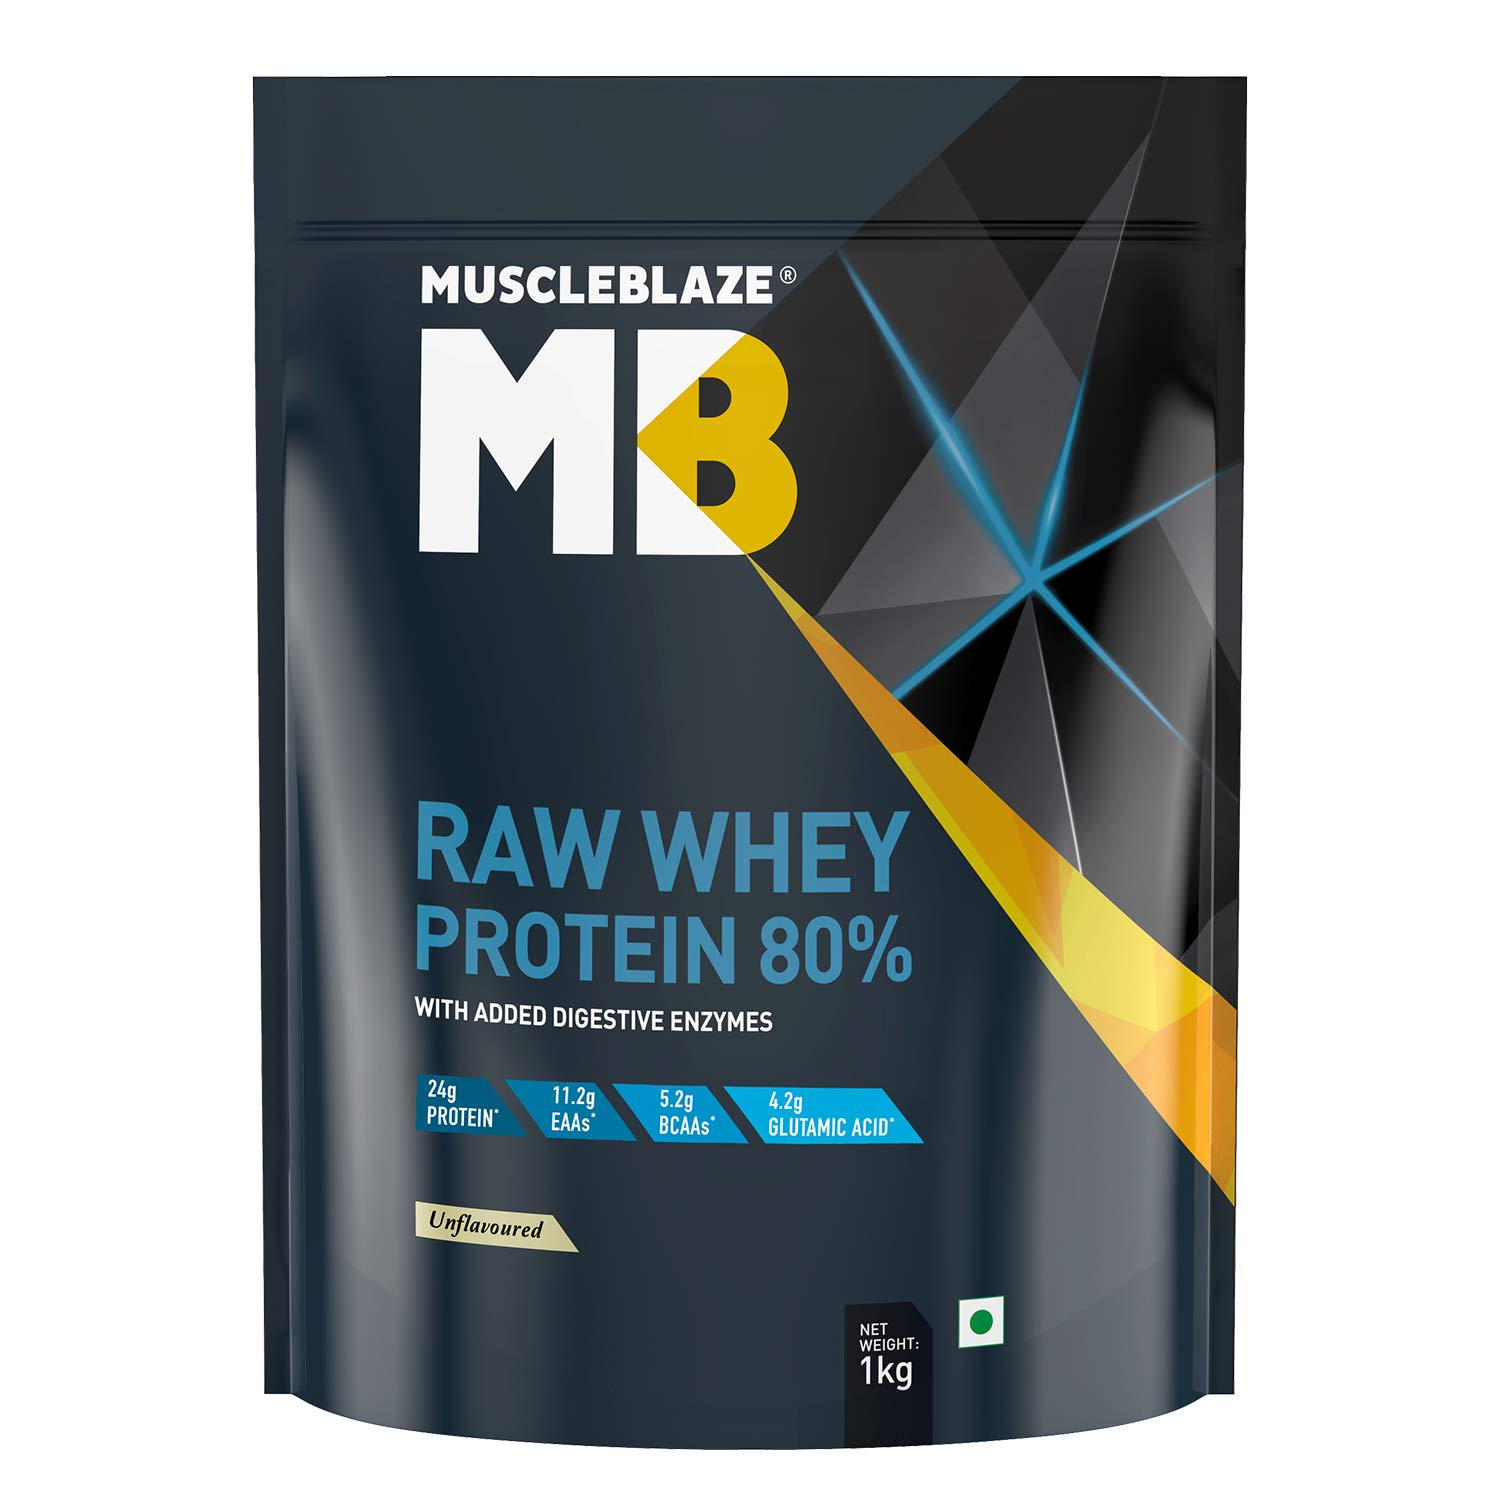 Buy MuscleBlaze Raw Whey Protein Concentrate 80% with added